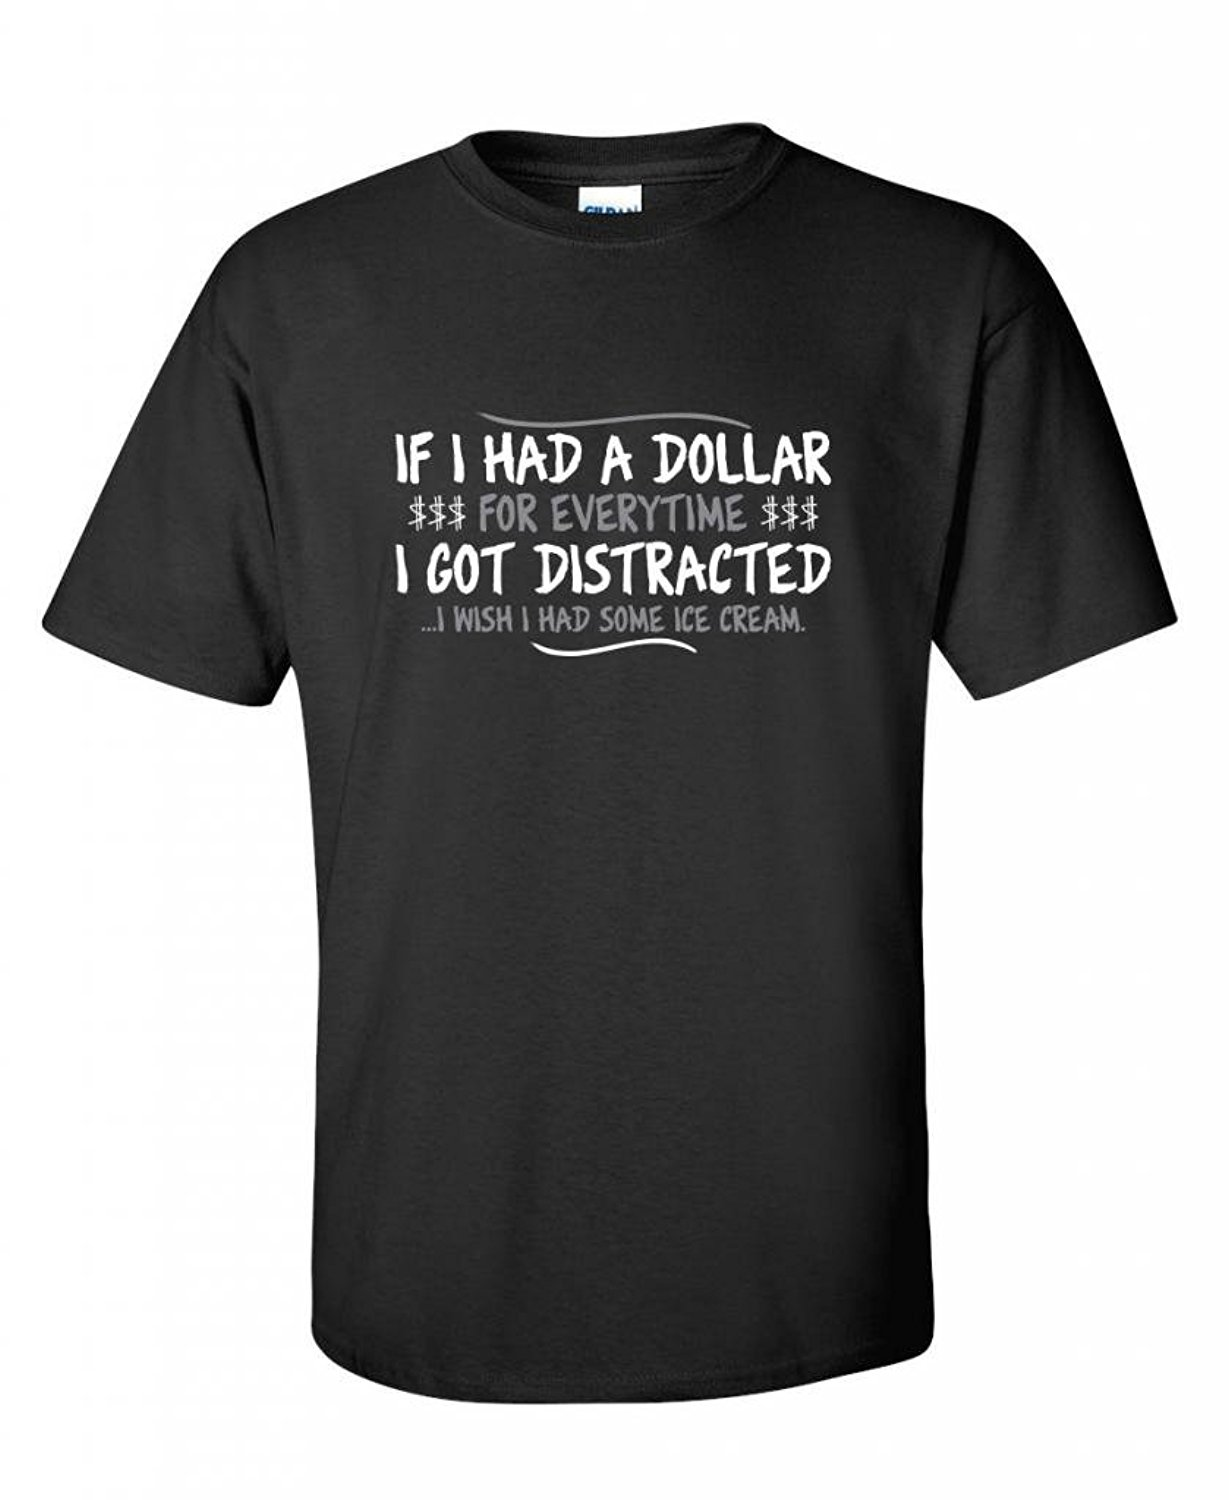 Design t shirt maker free - Shirt Maker If I Had A Dollar For Everytime I Got Distracted Sarcastic Very Men S Design O Neck Short Sleeve T Shirts